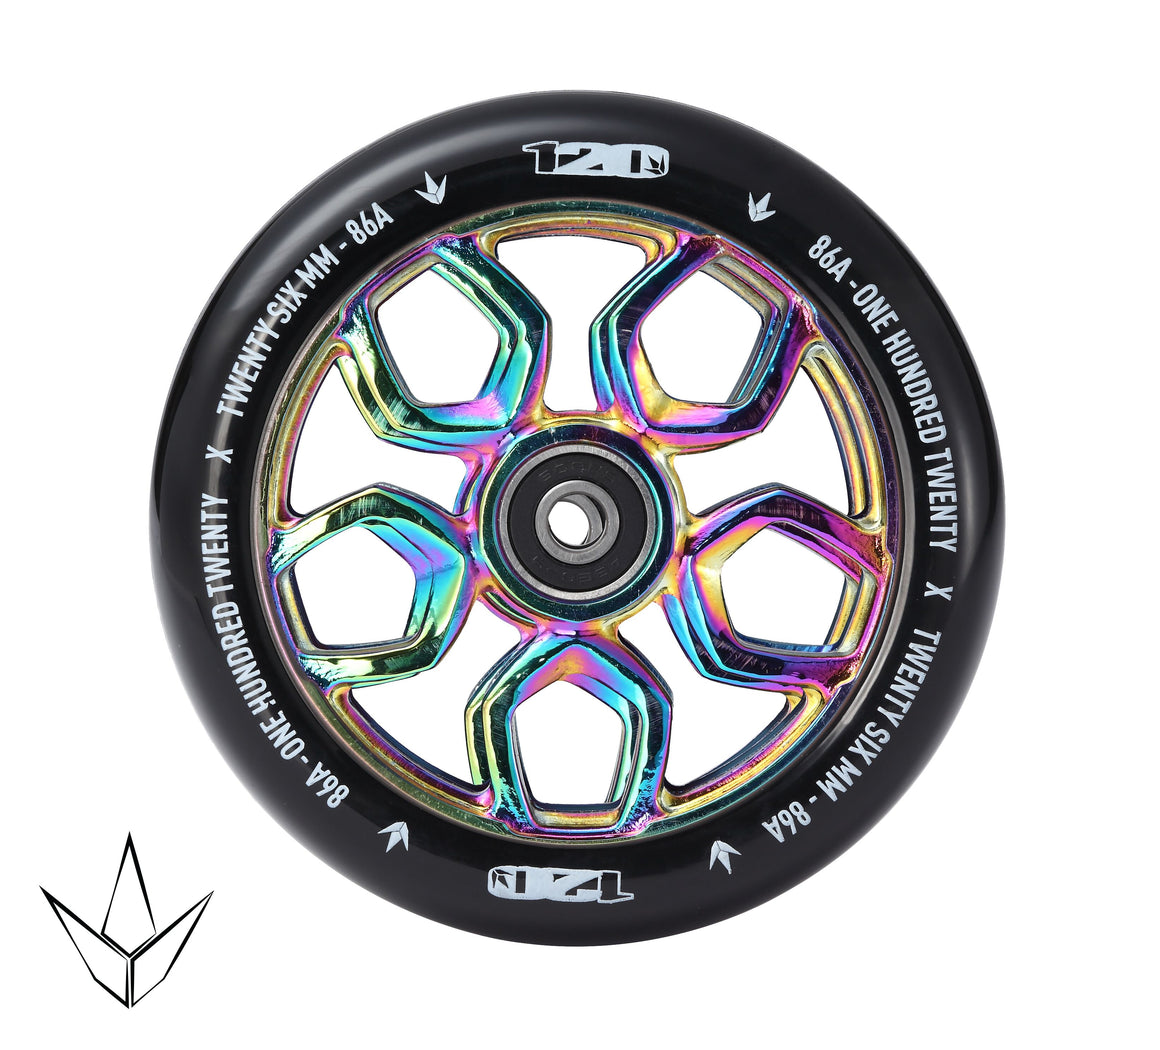 Envy 120mm Lambo Wheels Oil Slick